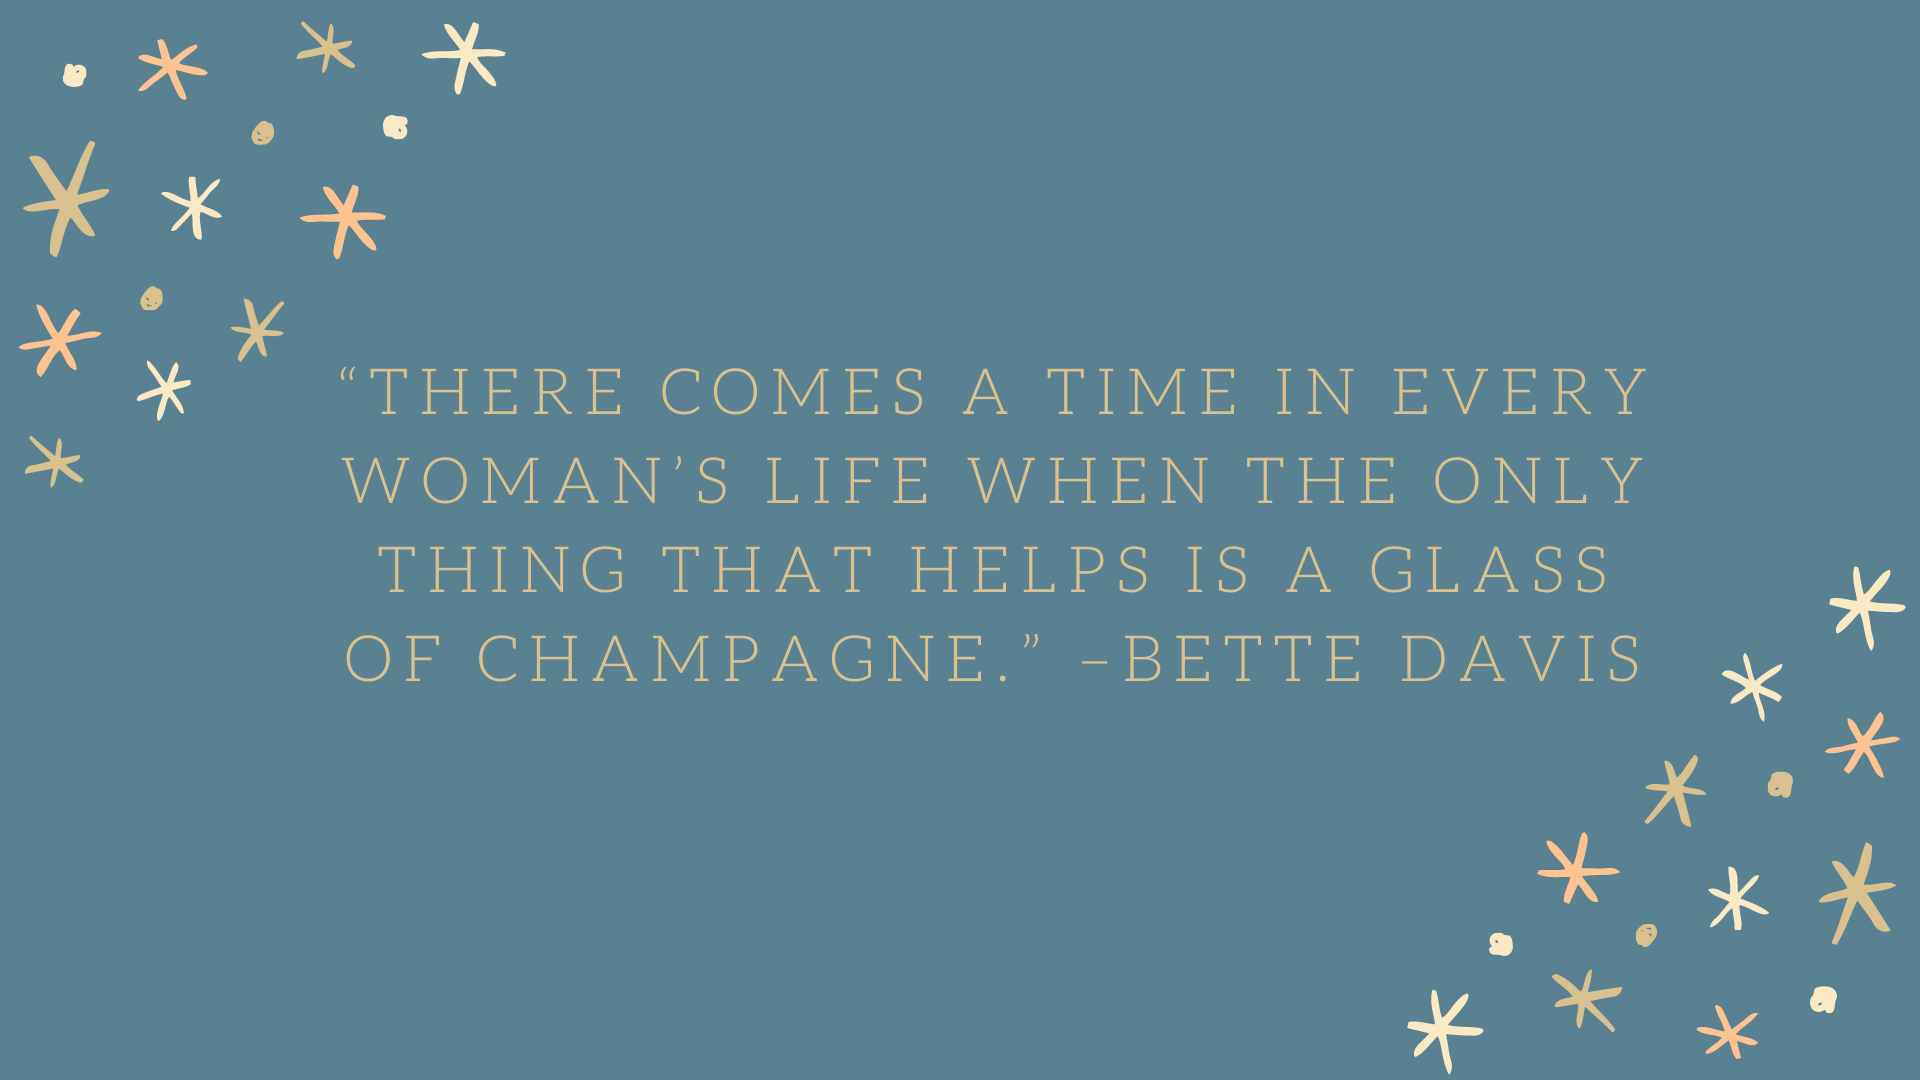 """There comes a time in every woman's life when the only thing that helps is a glass of champagne."" –Bette Davis"